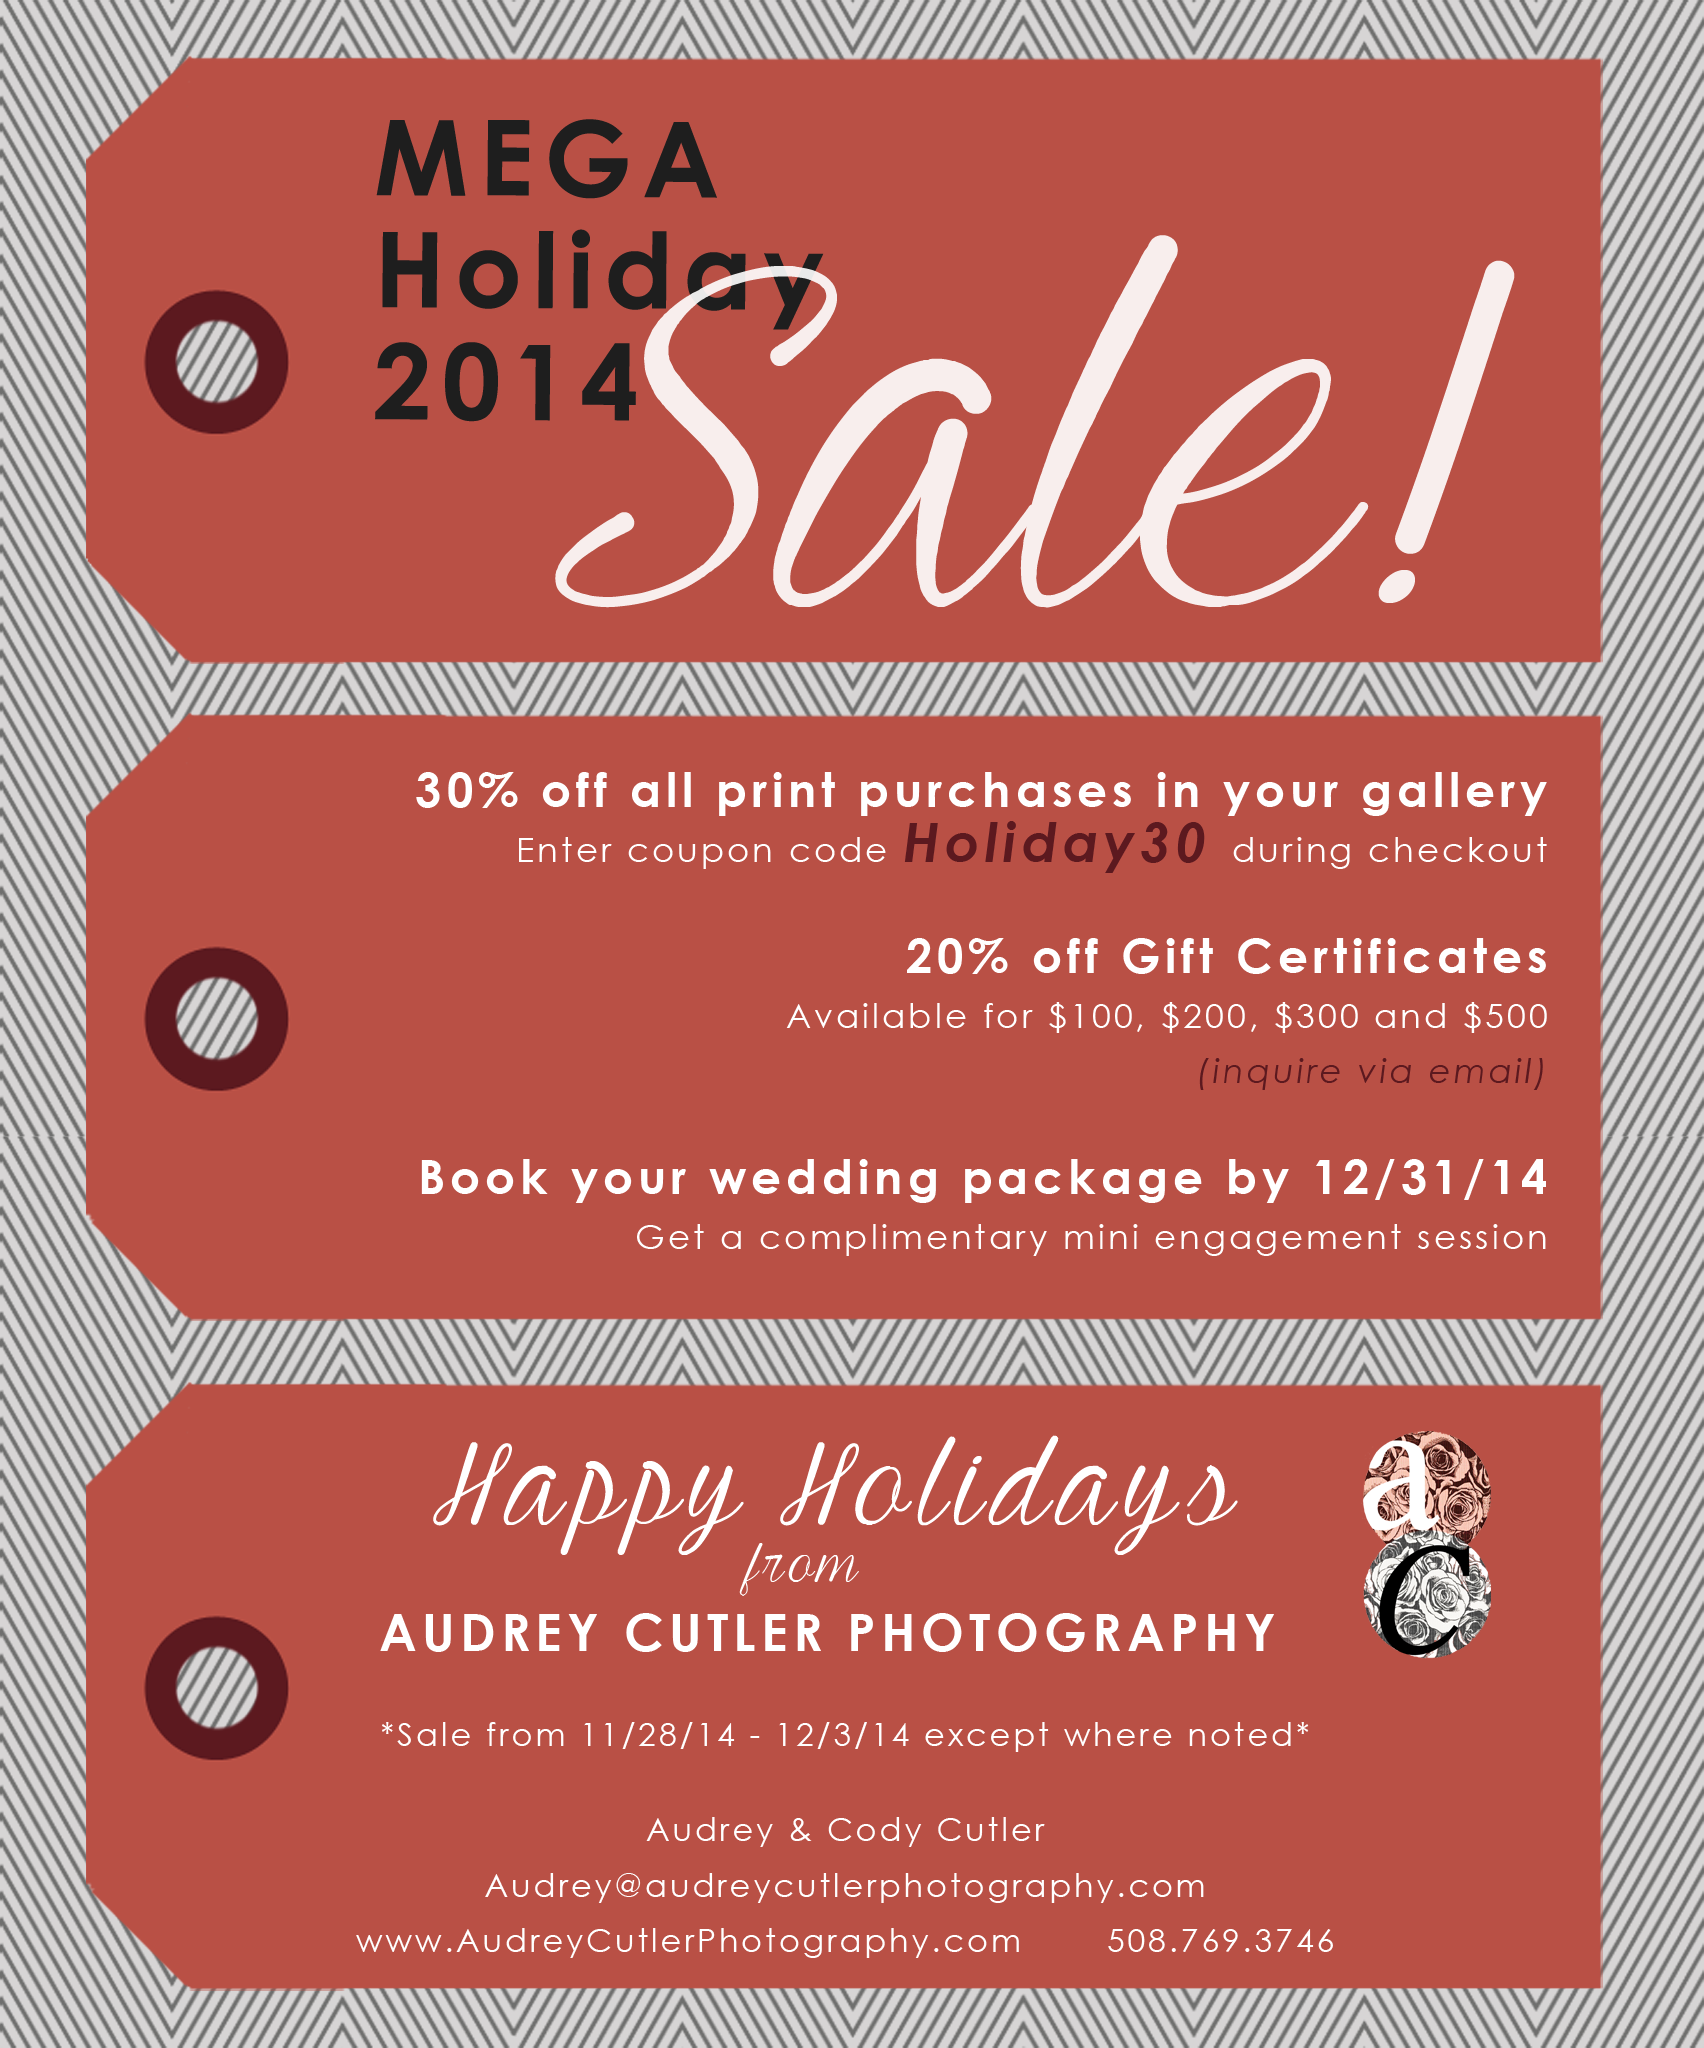 Audrey_Cutler_photography_Sale